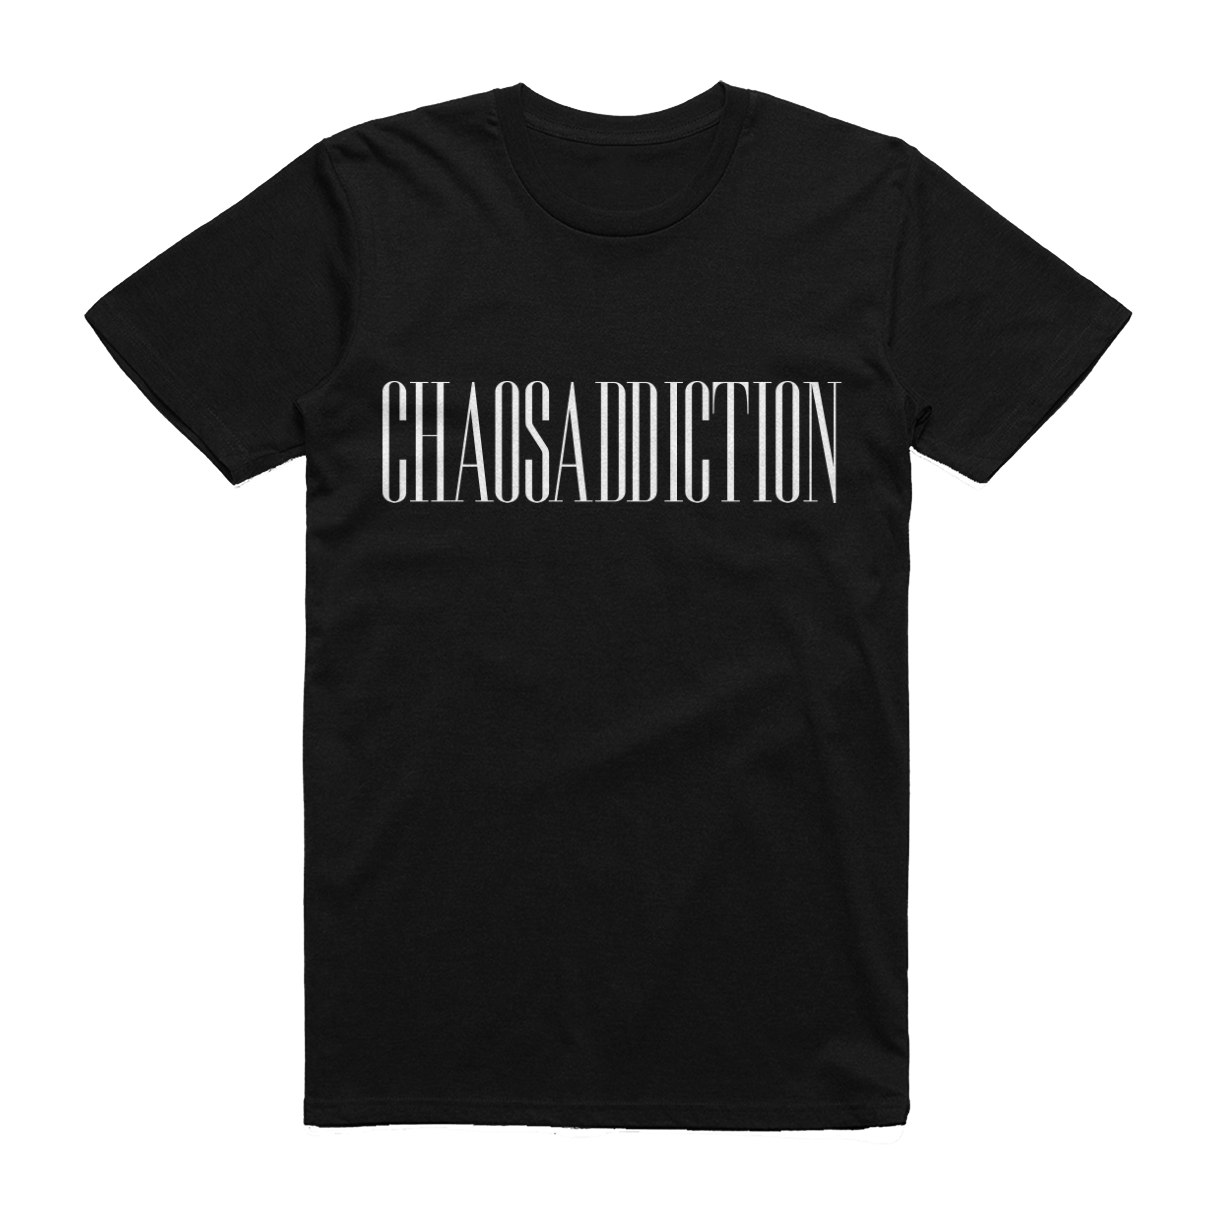 chaosaddiction logo black tshirt merch